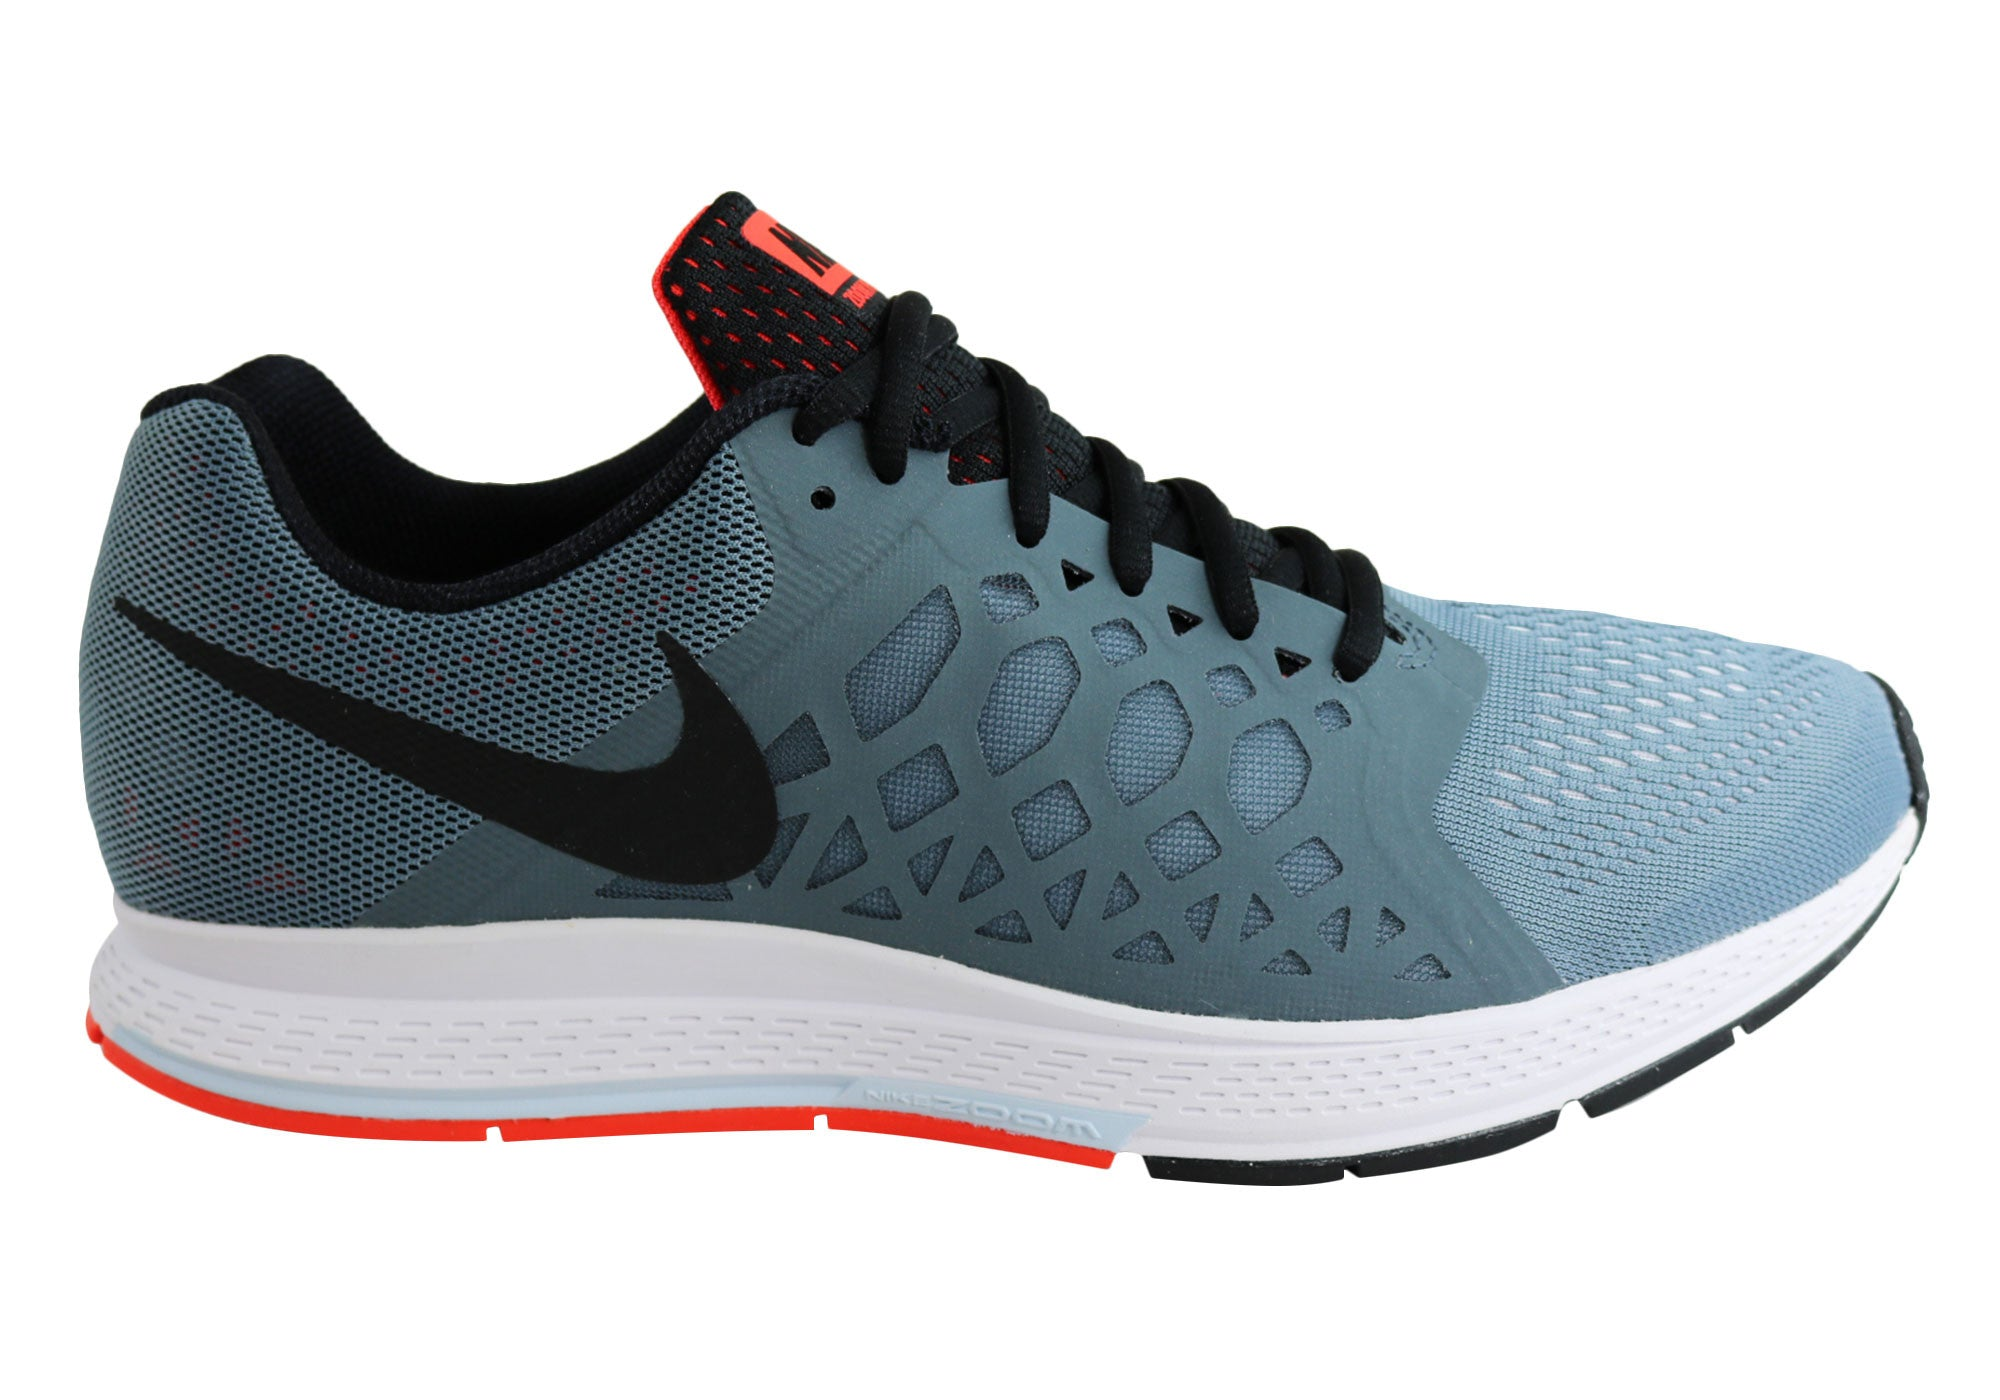 1c5e42035d80 Home Nike Air Zoom Pegasus 31 Mens Cushioned Running Shoes. Graphite ...